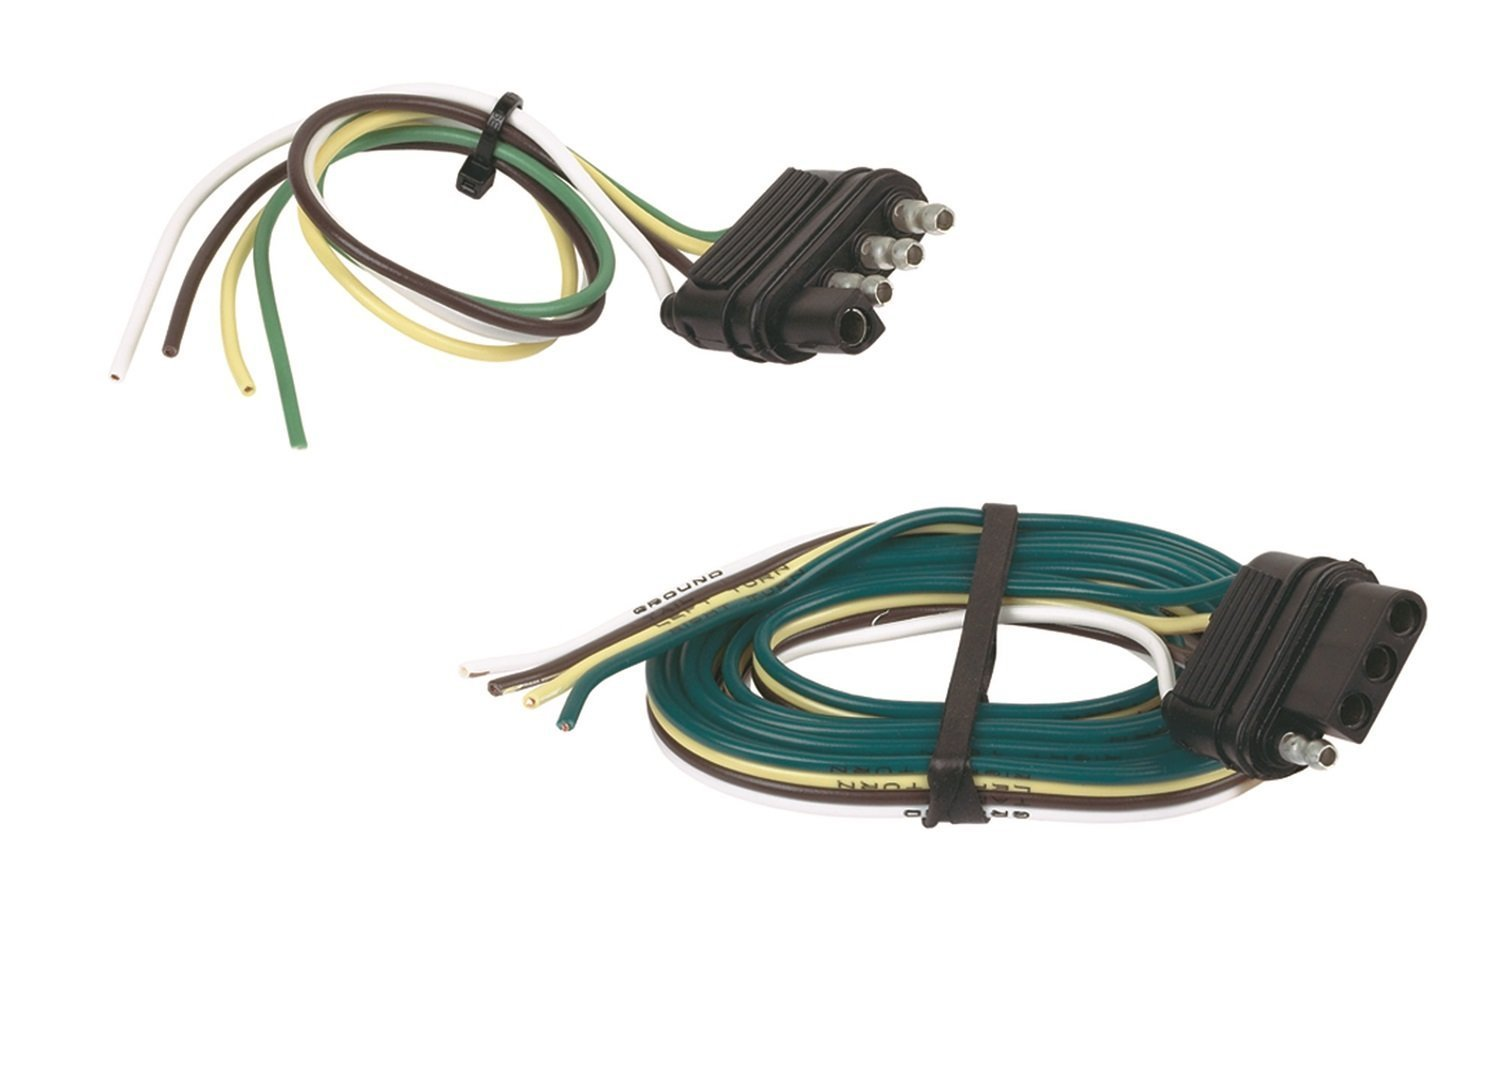 Hopkins Towing Solution Hopkins 48215 4-Wire Flat Connector Set Includes 48035 and 48115